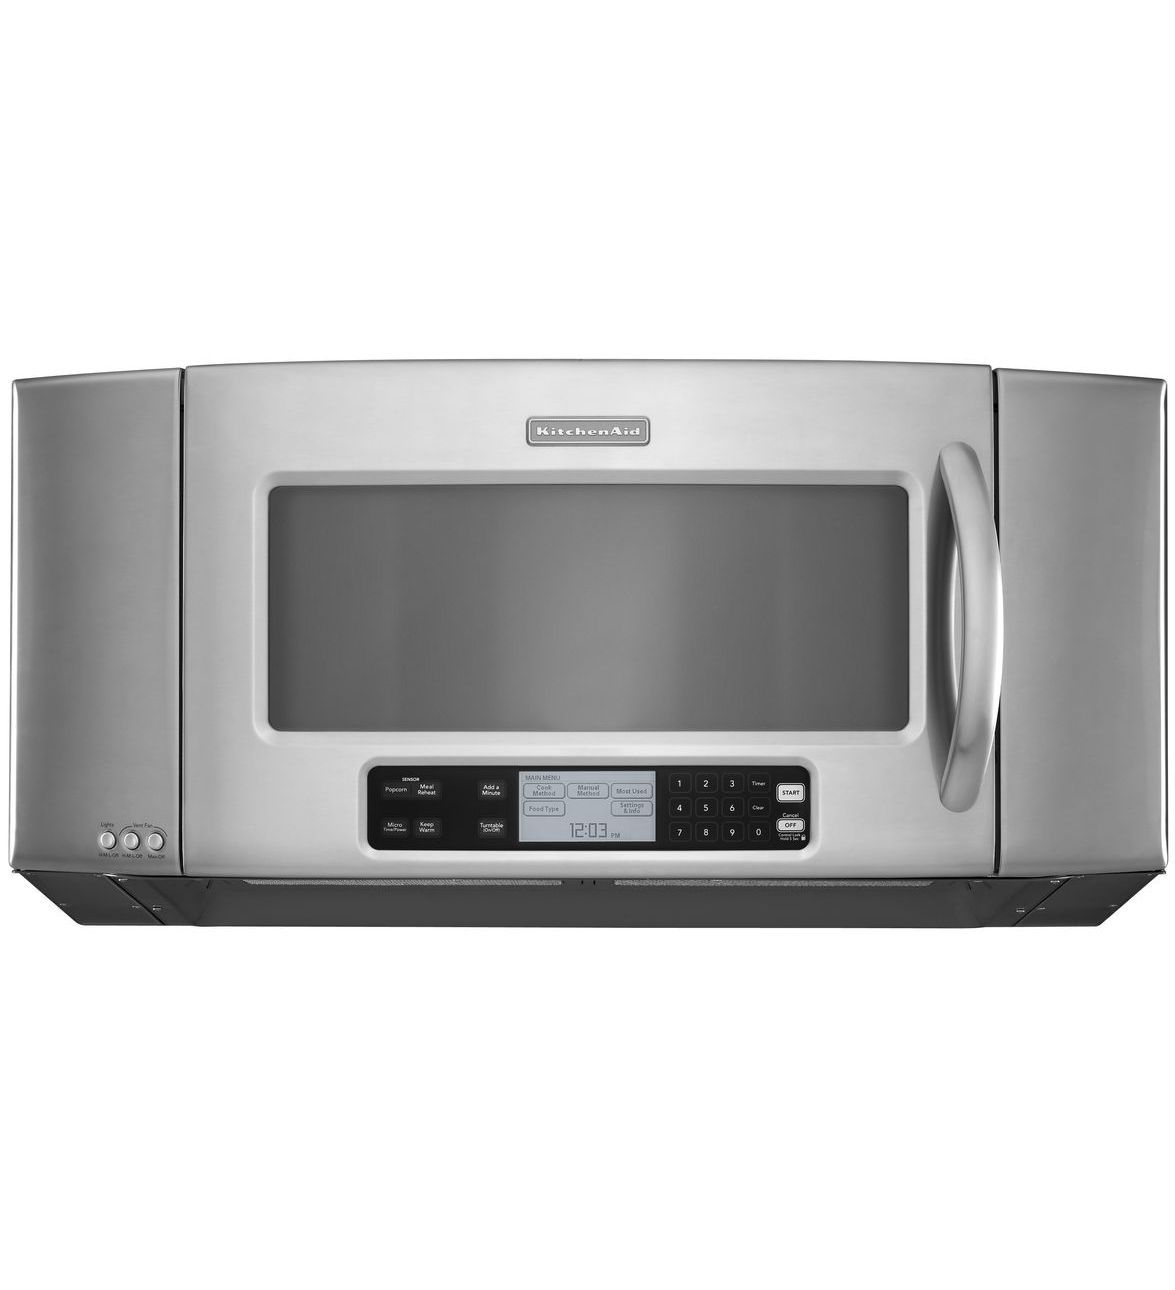 Kitchenaid 36 1200 Watt Microwave Hood Combination Oven Architect Series Ii Khms2056sss Stainless Steel This Model Has An Interesting Design